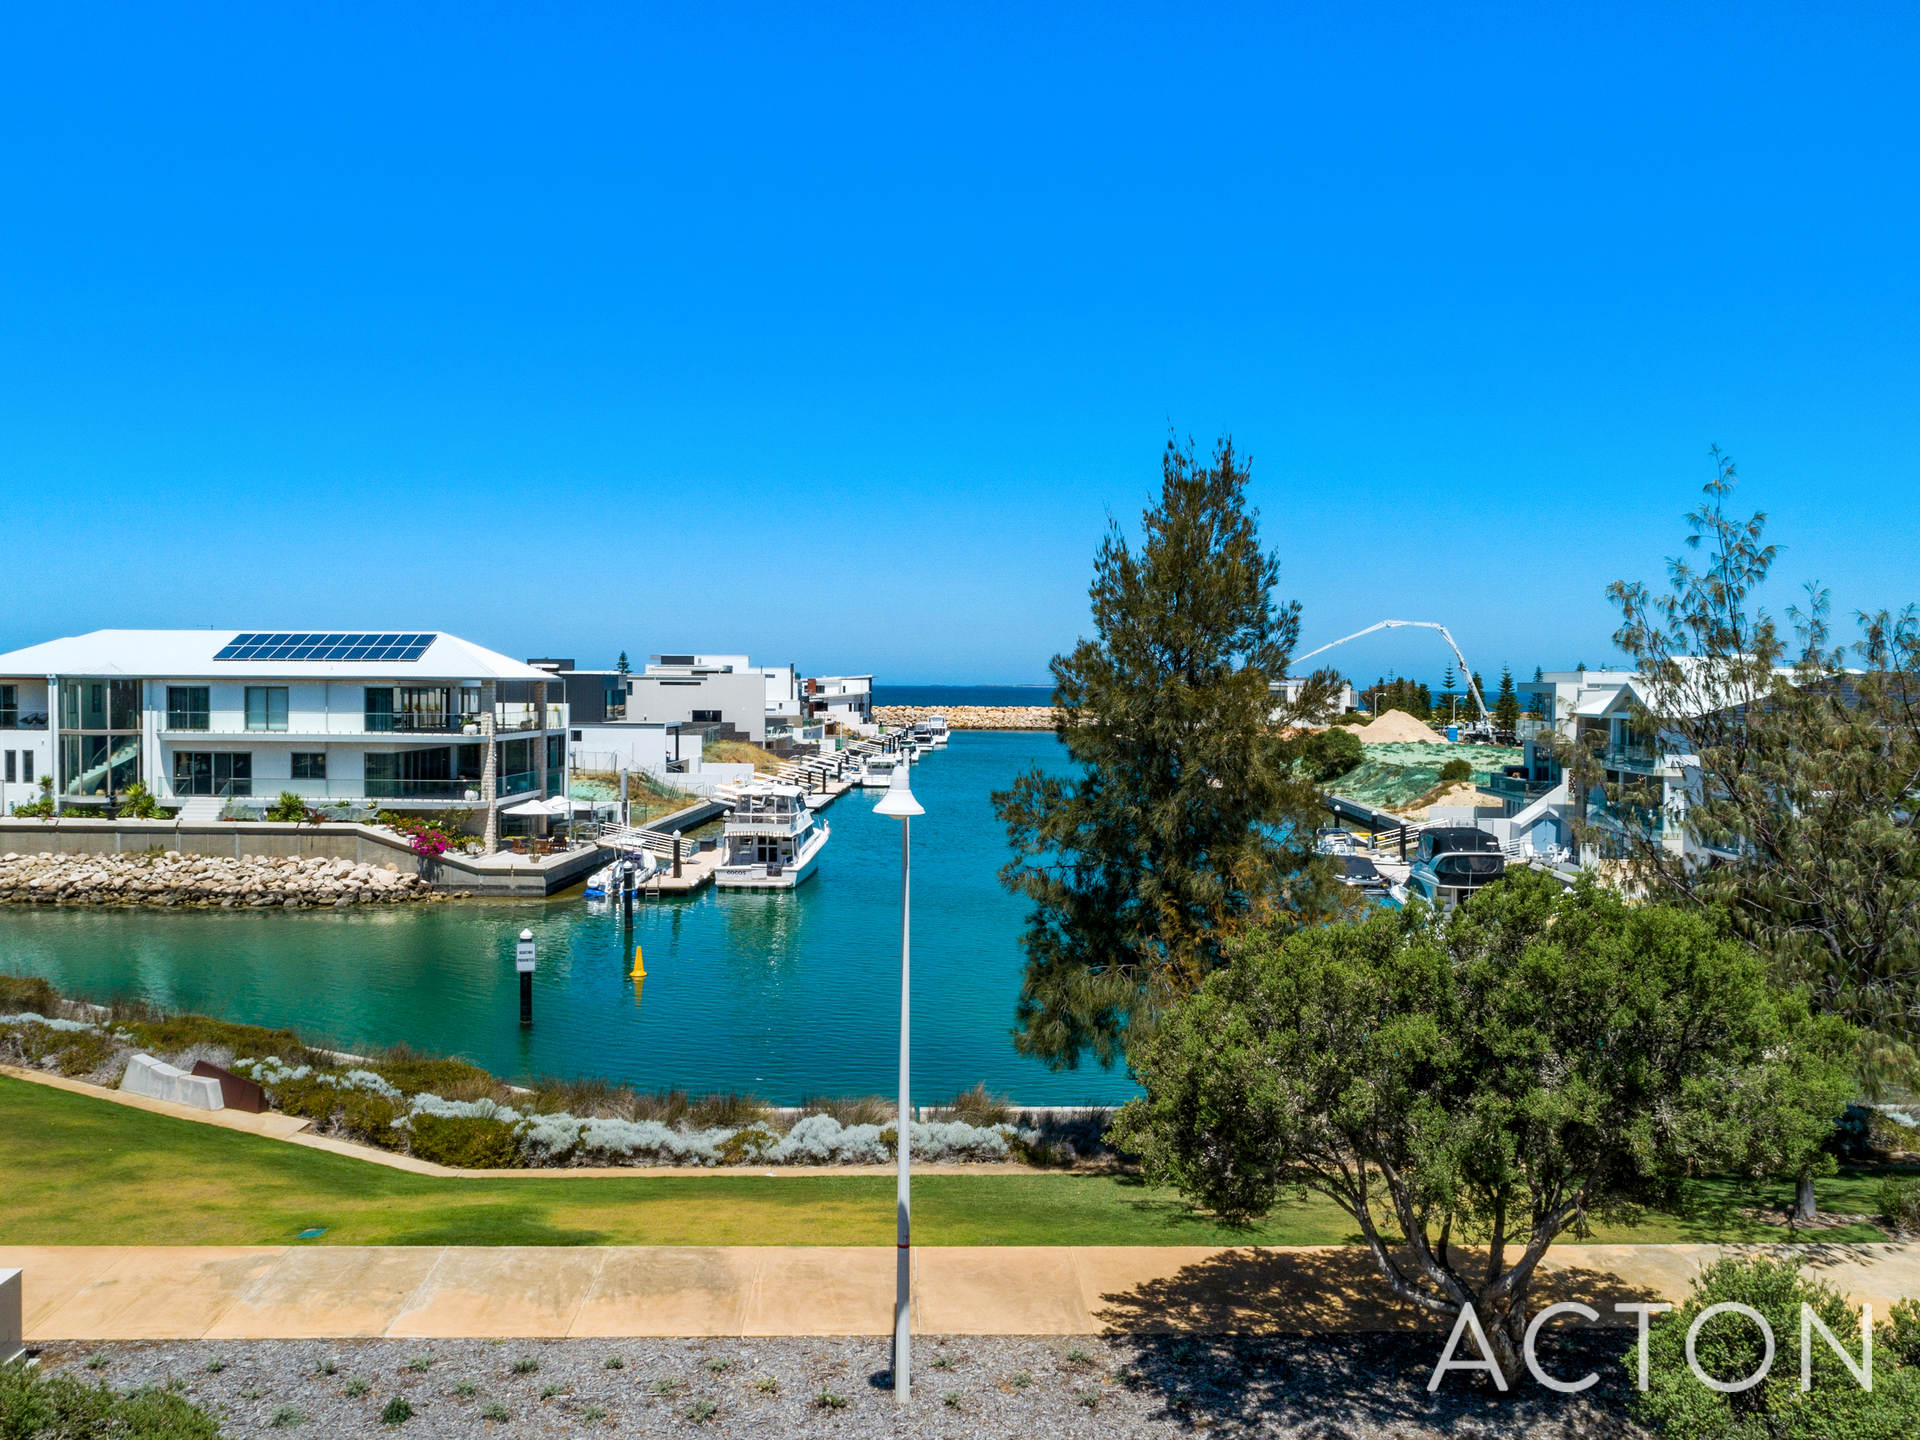 61 Caledonia Loop North Coogee - Land For Sale - 21196811 - Acton Fremantle